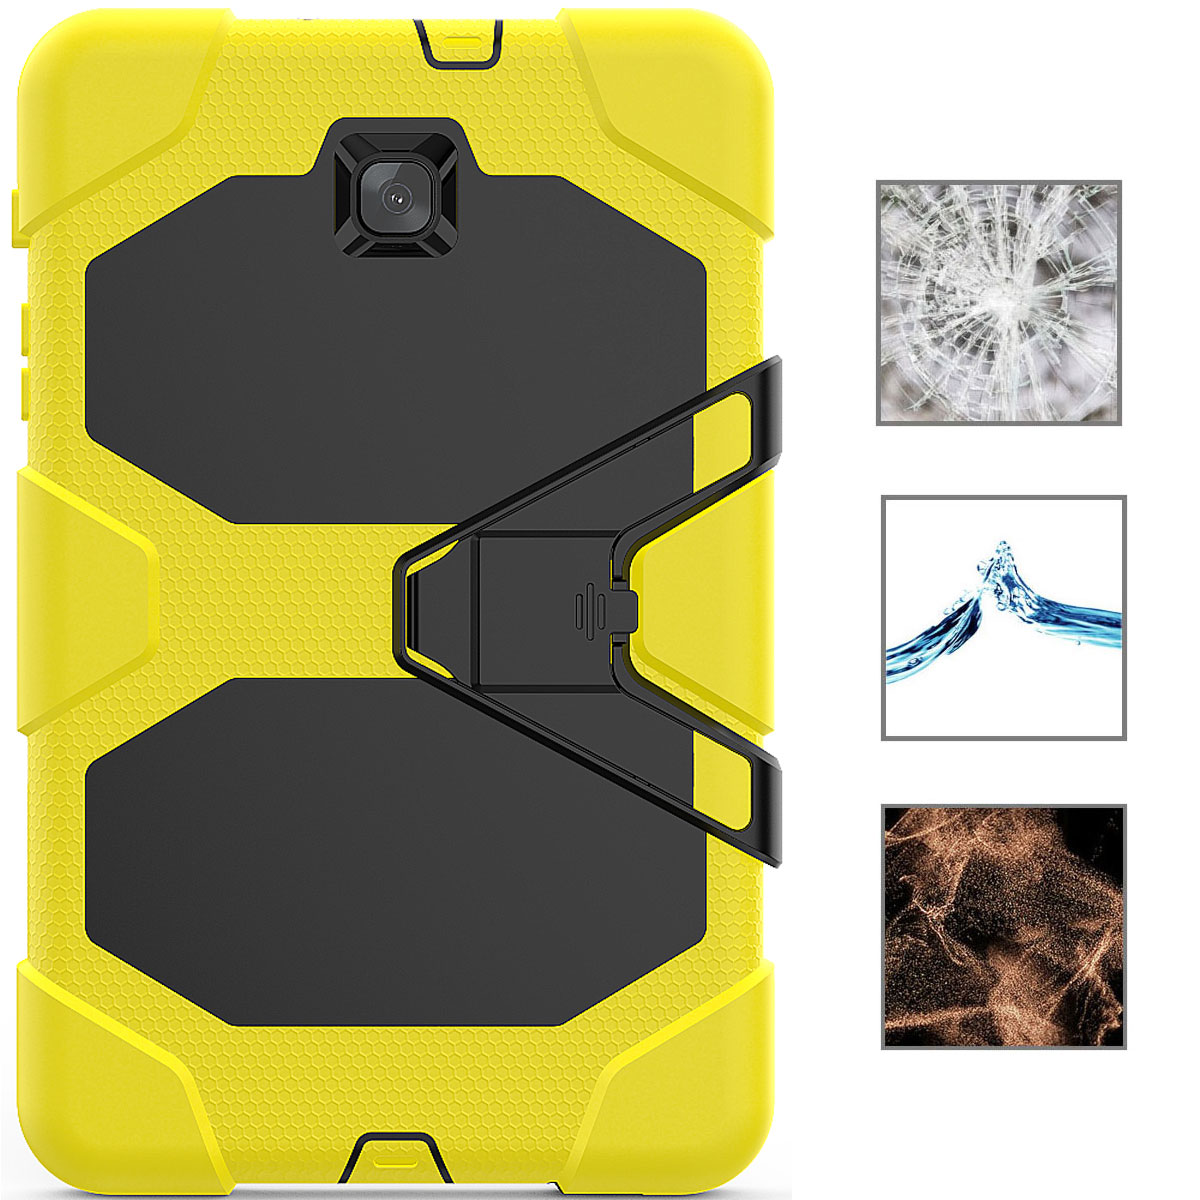 Rugged-Hard-Case-For-Samsung-Galaxy-Tab-A-8-0-2018-SM-T387-with-Screen-Protector thumbnail 73